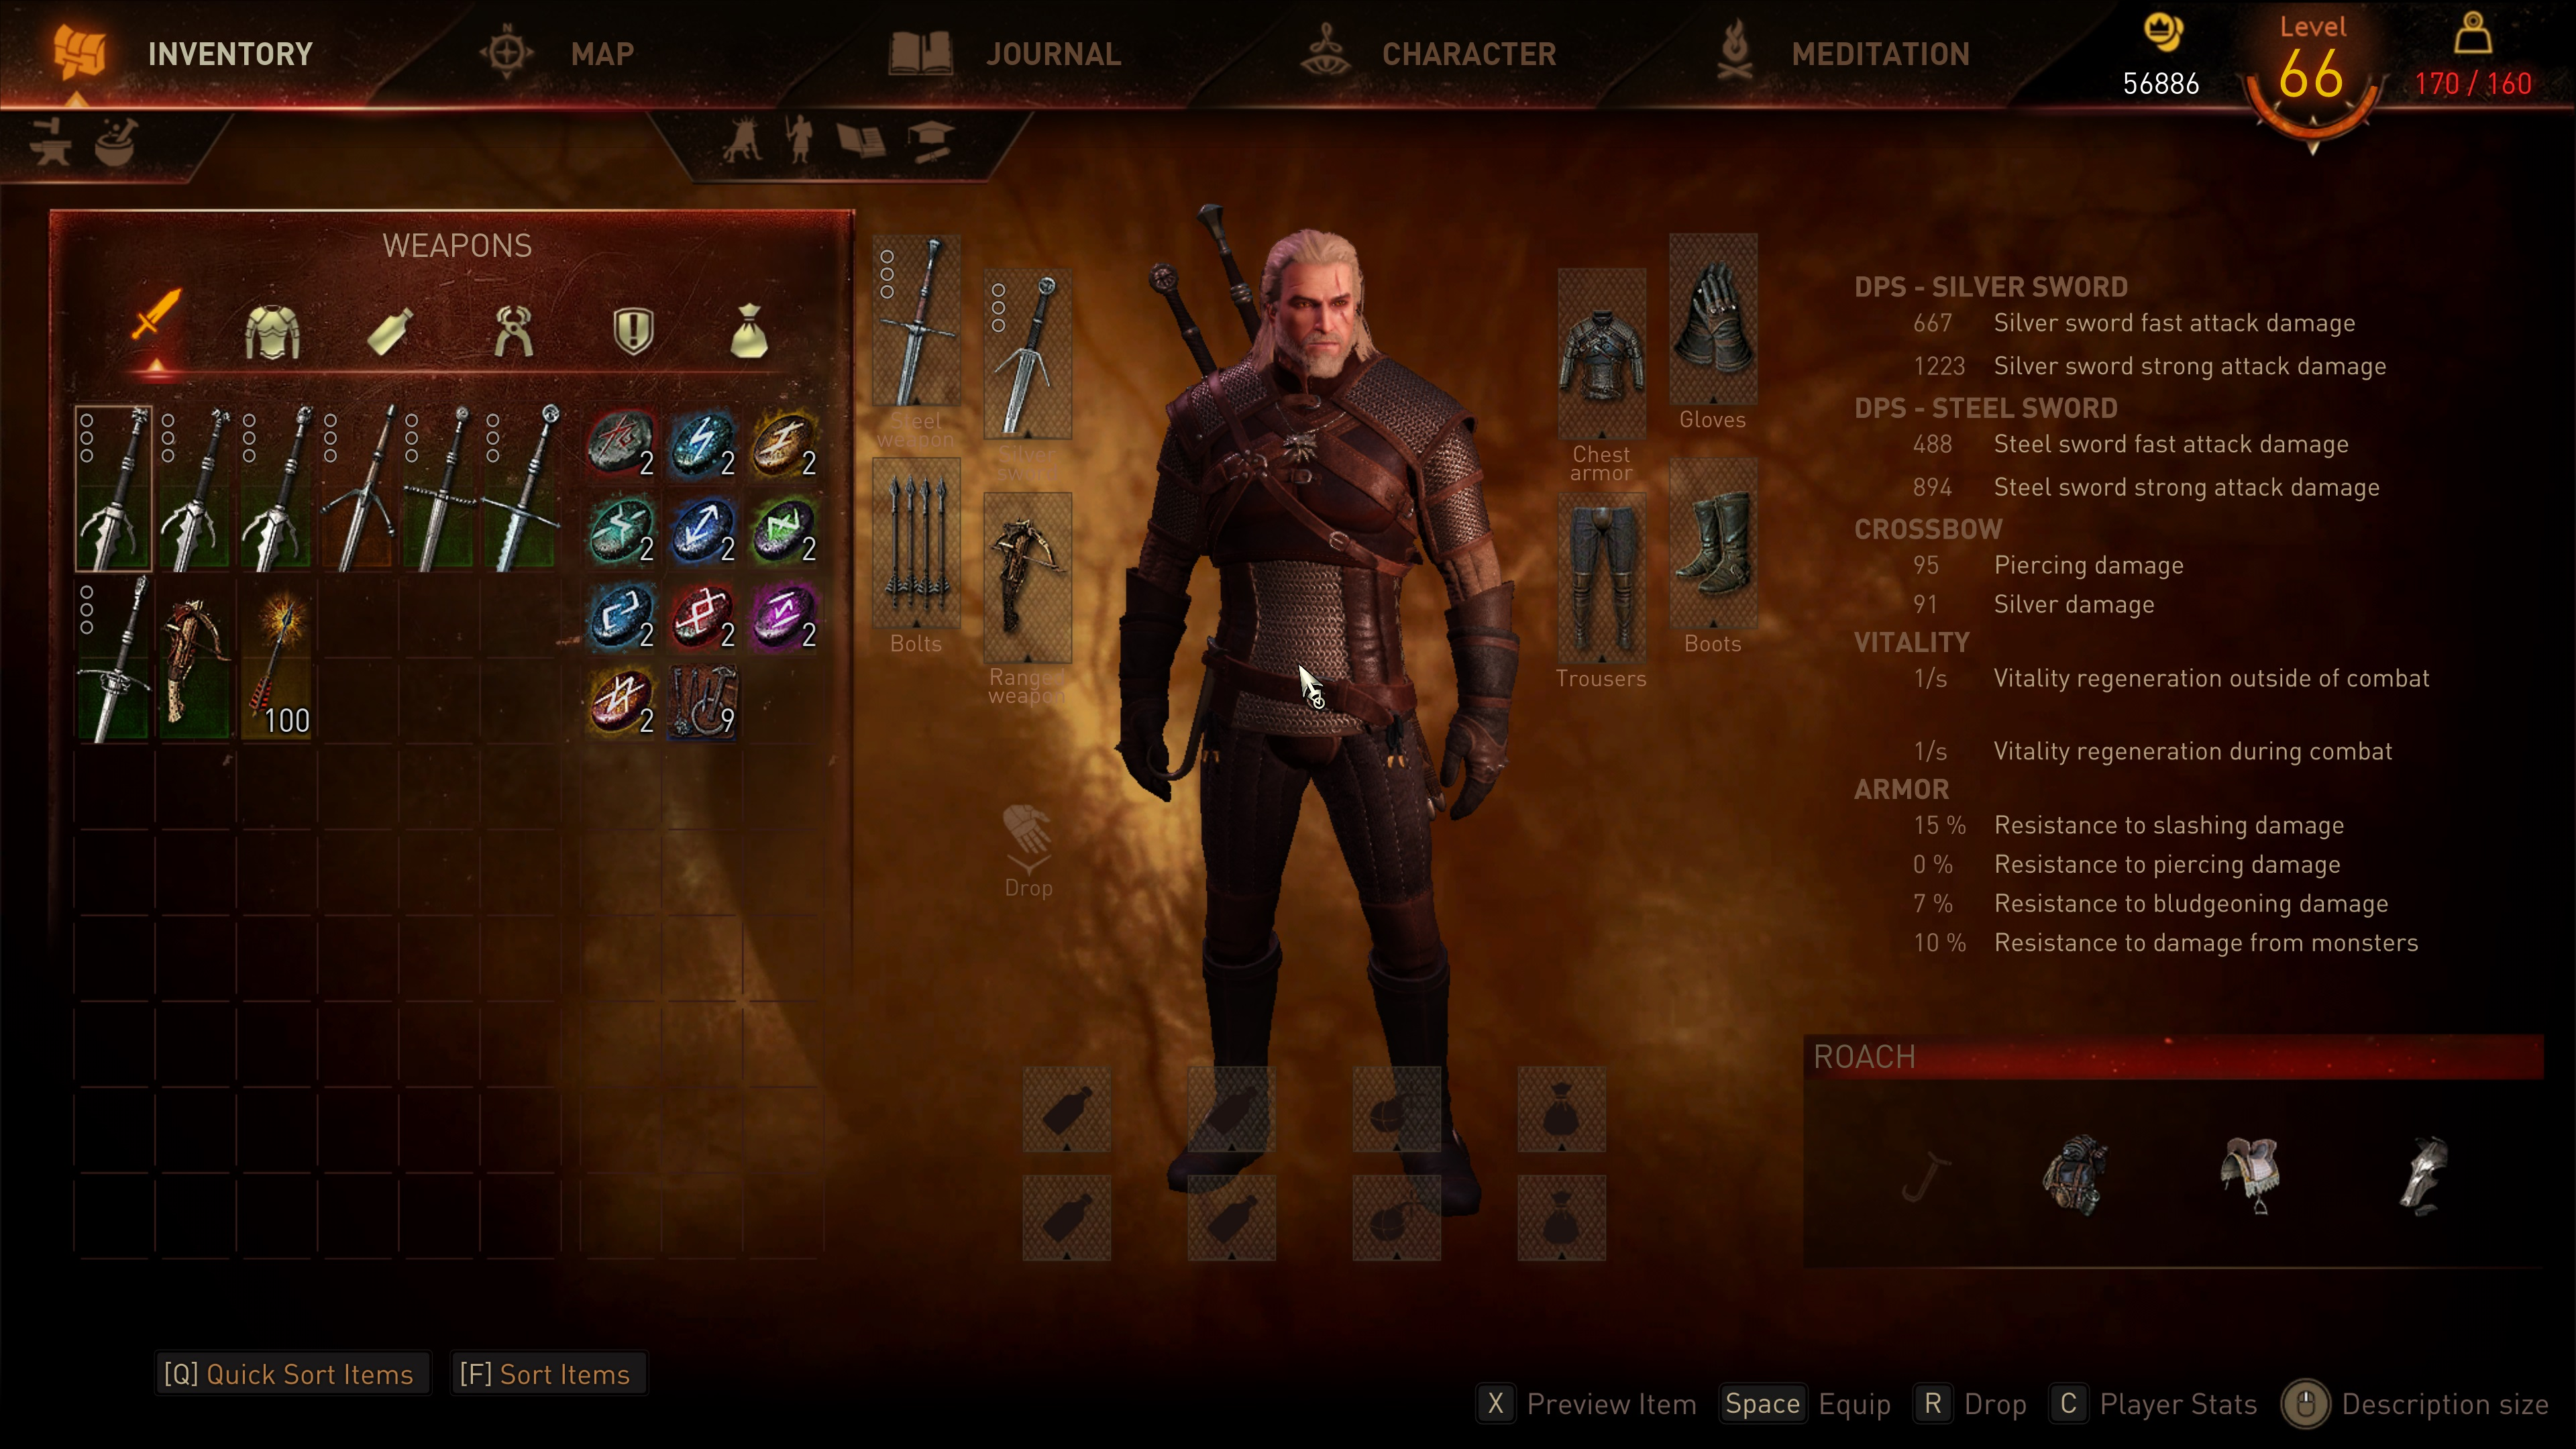 The Witcher 3 E3 2014 UI and HUD mod | PC Gamer